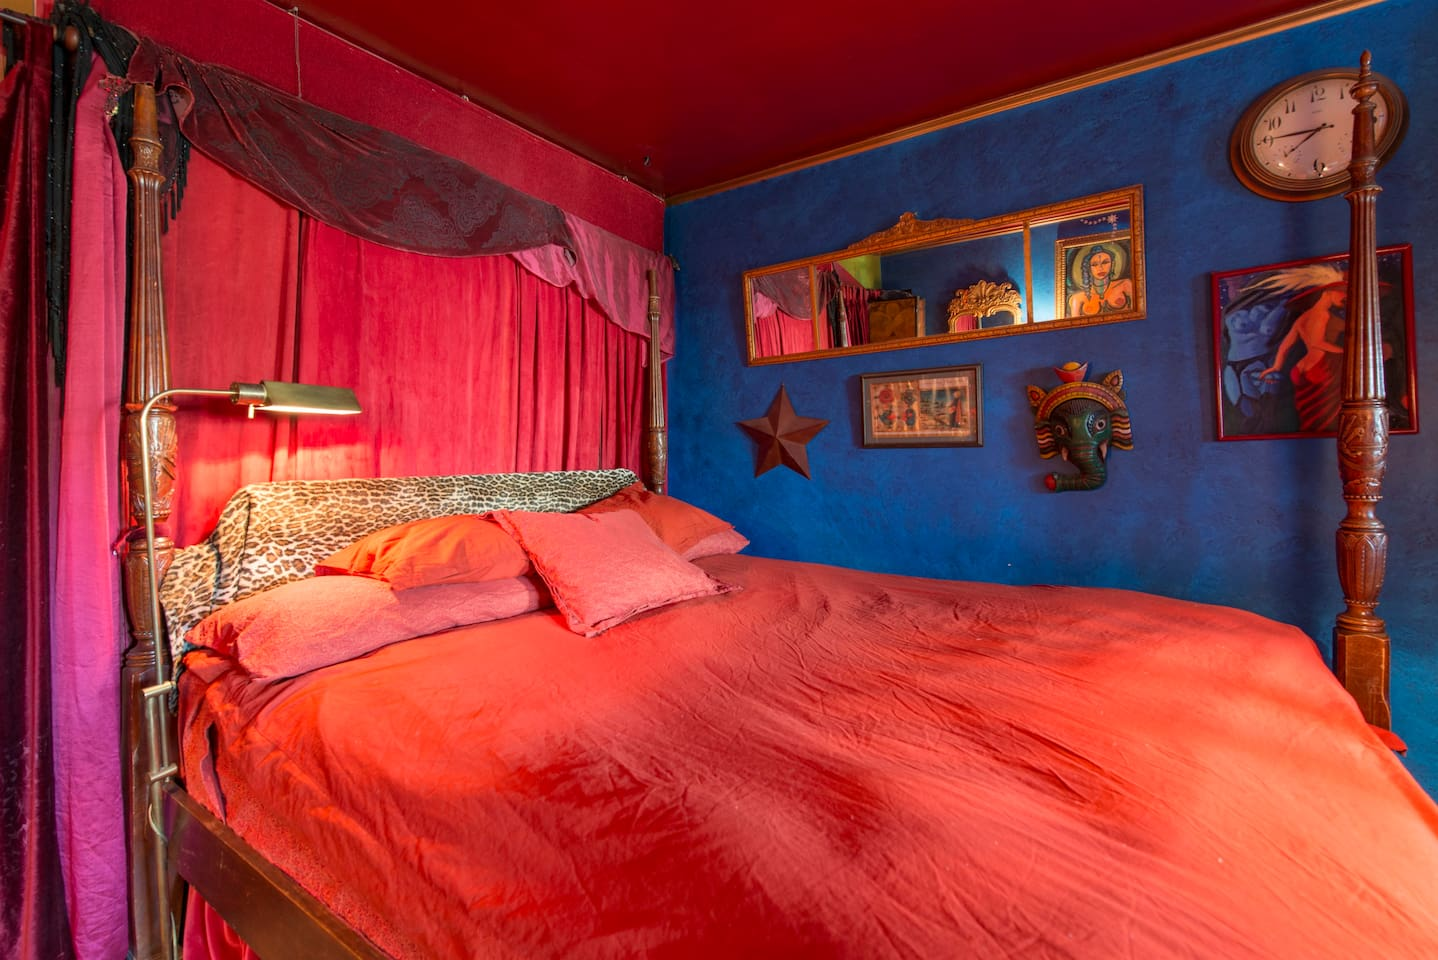 Kinky For The Bedroom Sun Moon Art House Lgbtq Welcoming Houses For Rent In Oakland